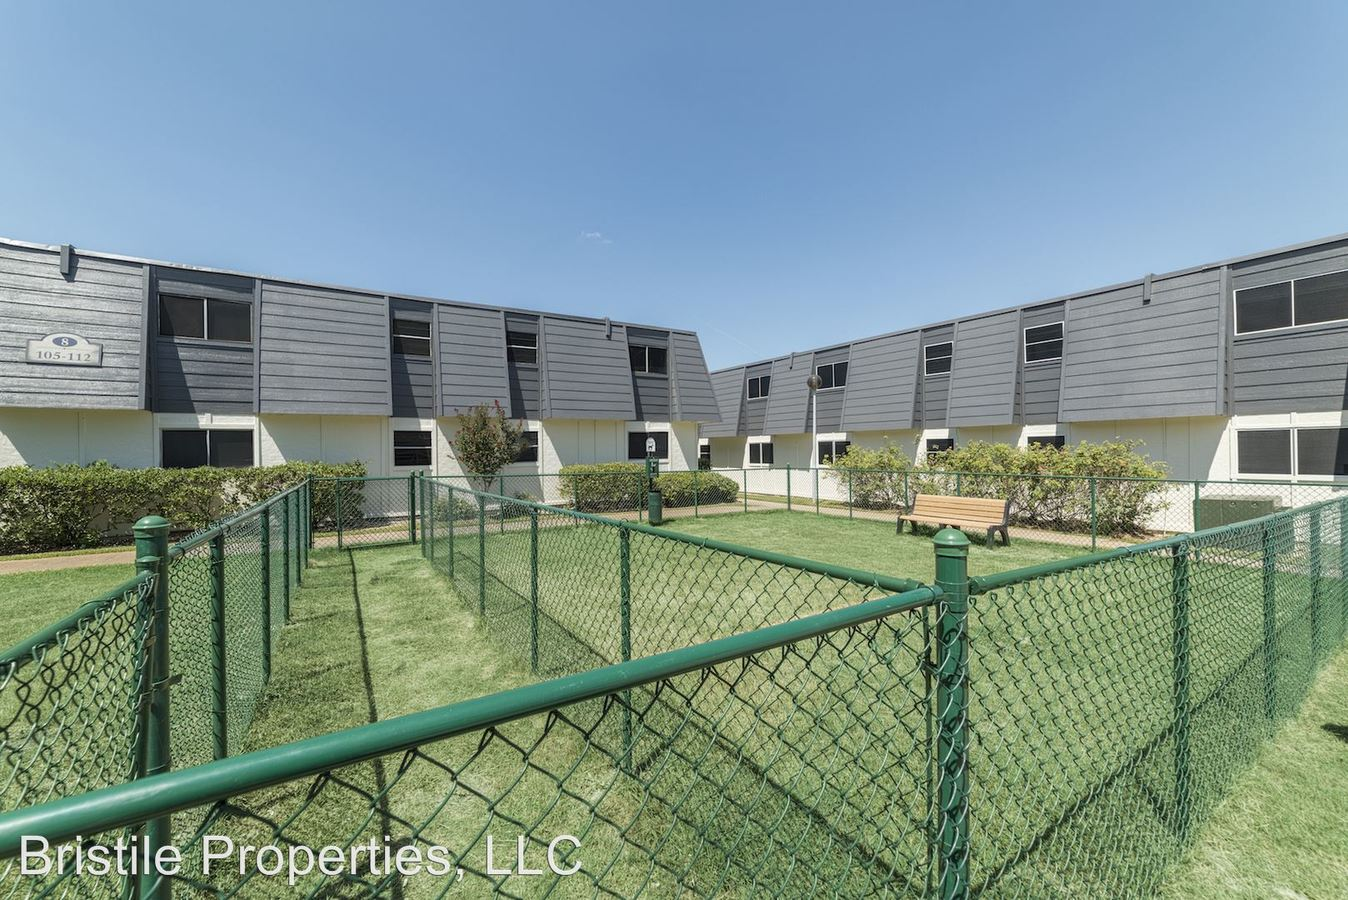 2 Bedrooms 2 Bathrooms Apartment for rent at Flats On 12 in College Station, TX